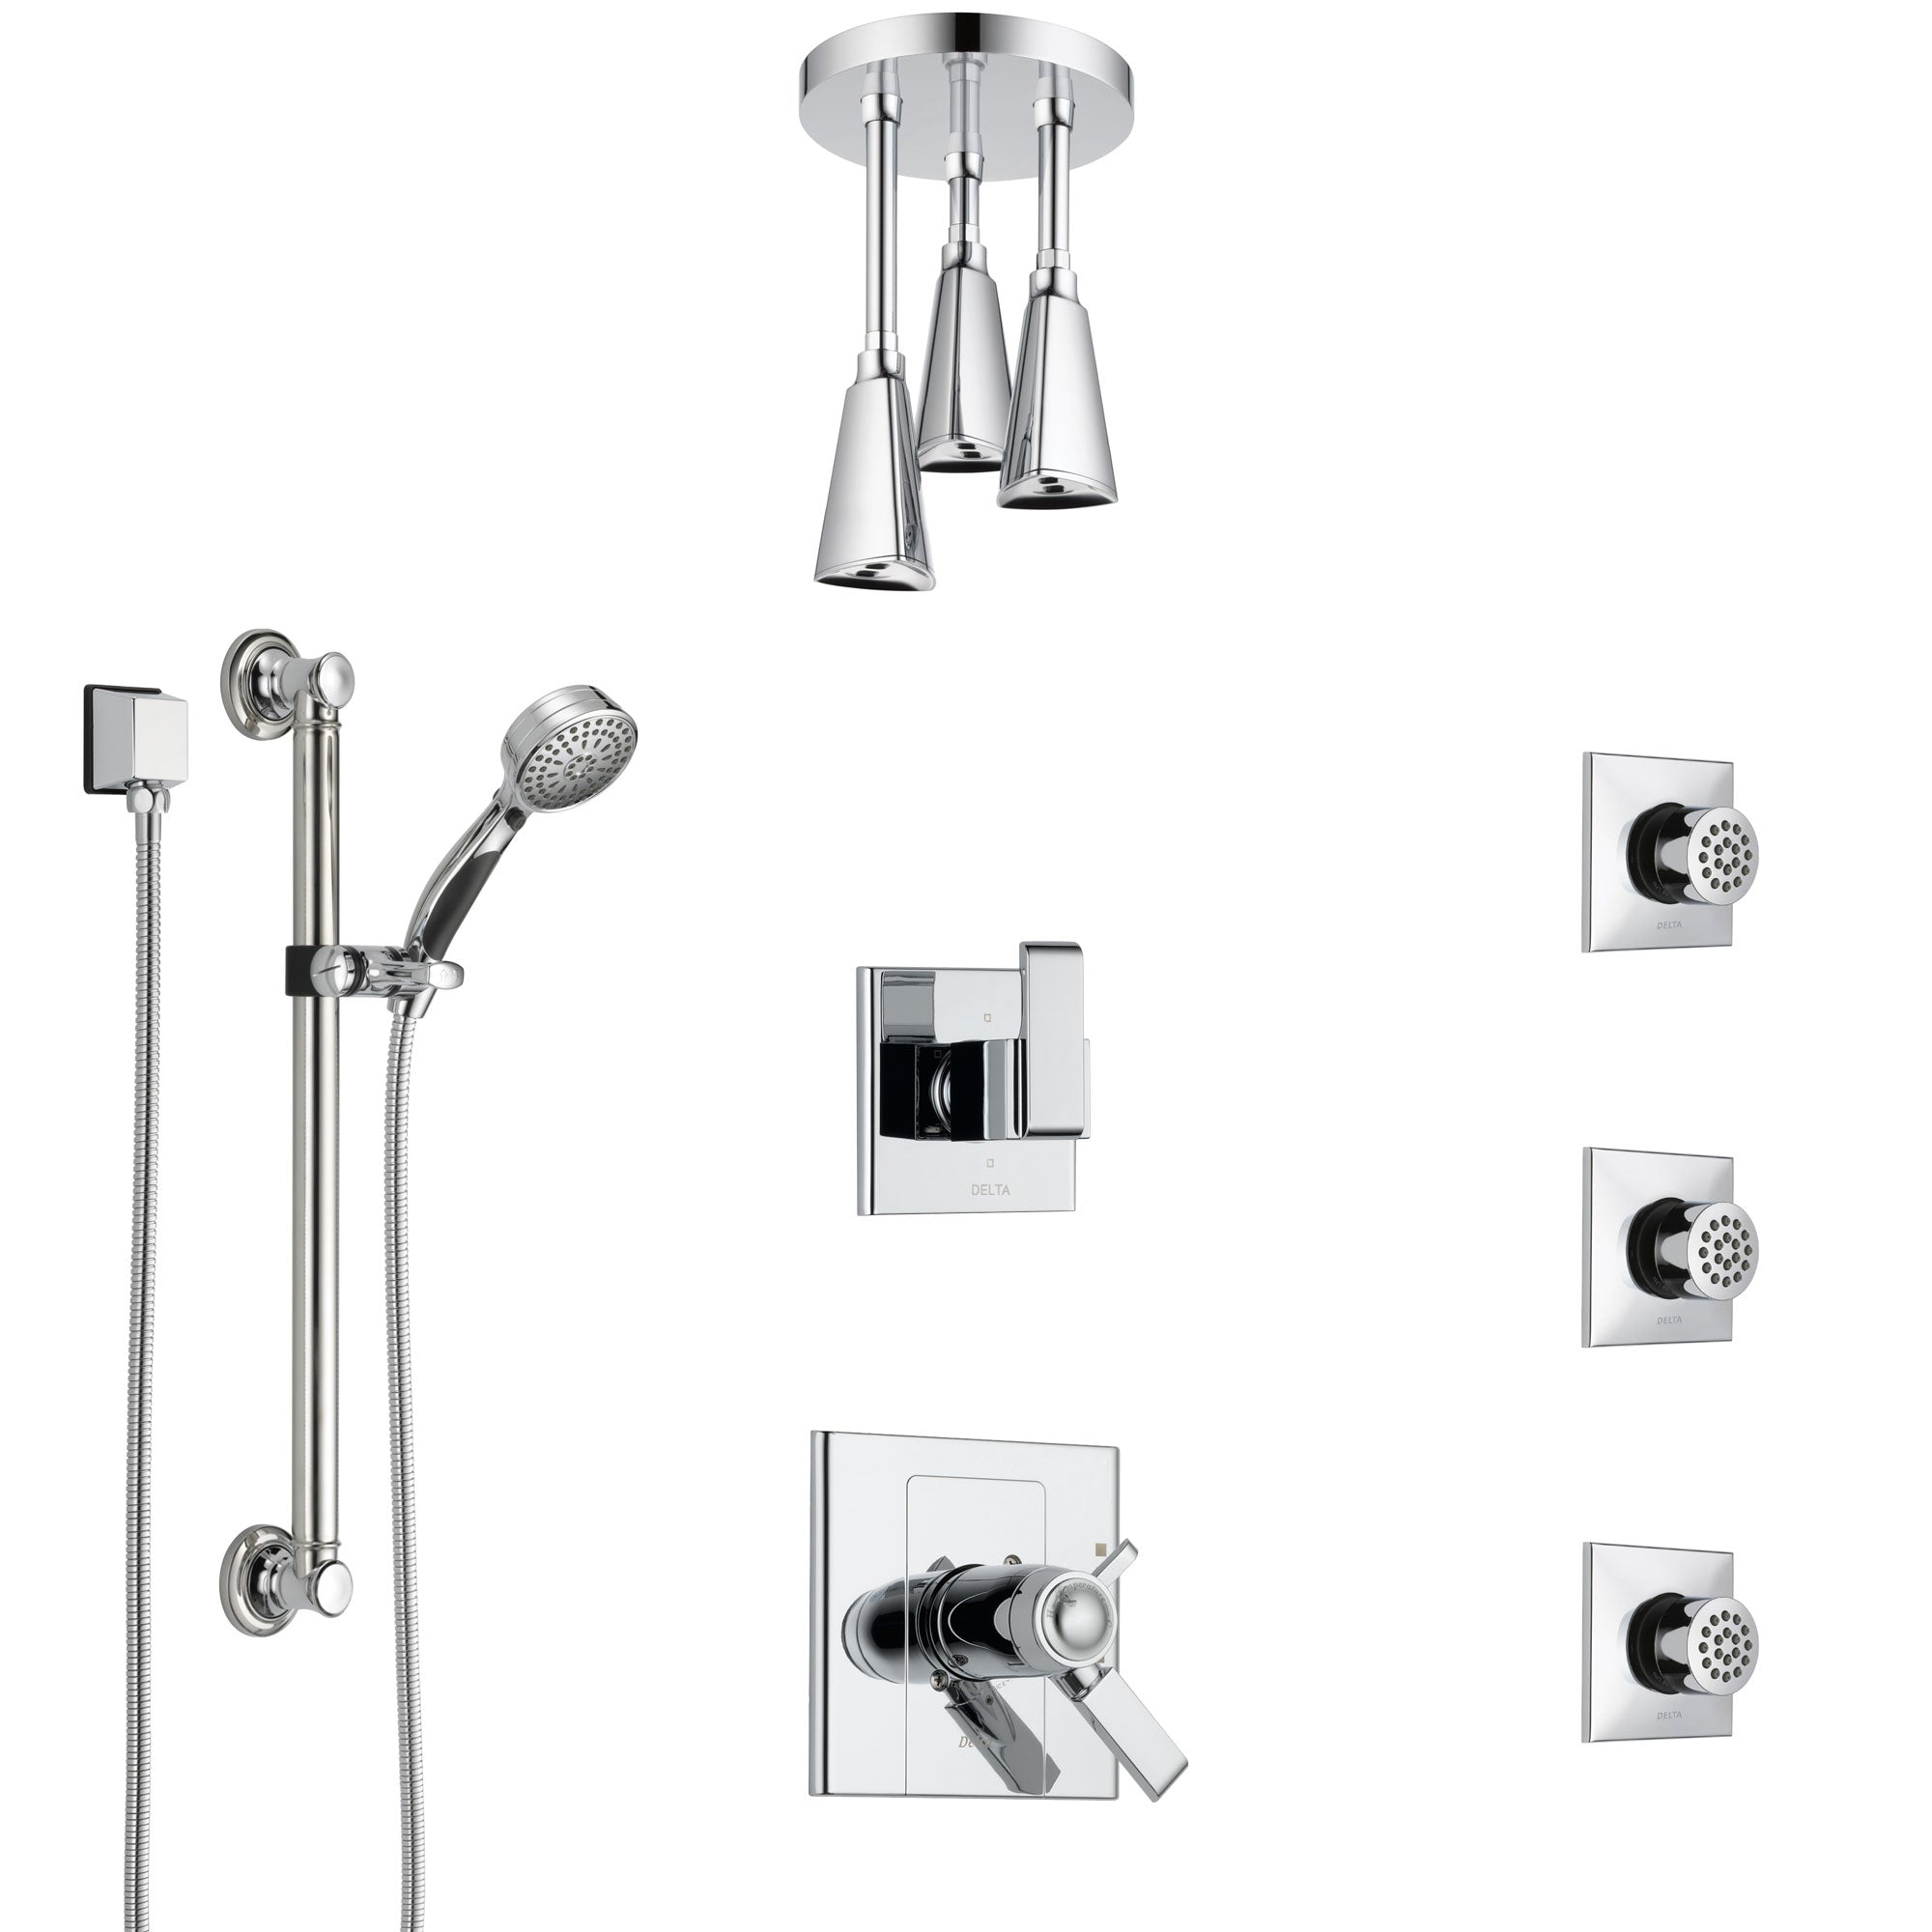 Delta Arzo Chrome Shower System with Dual Thermostatic Control, Diverter, Ceiling Mount Showerhead, 3 Body Sprays, and Grab Bar Hand Shower SS17T8624